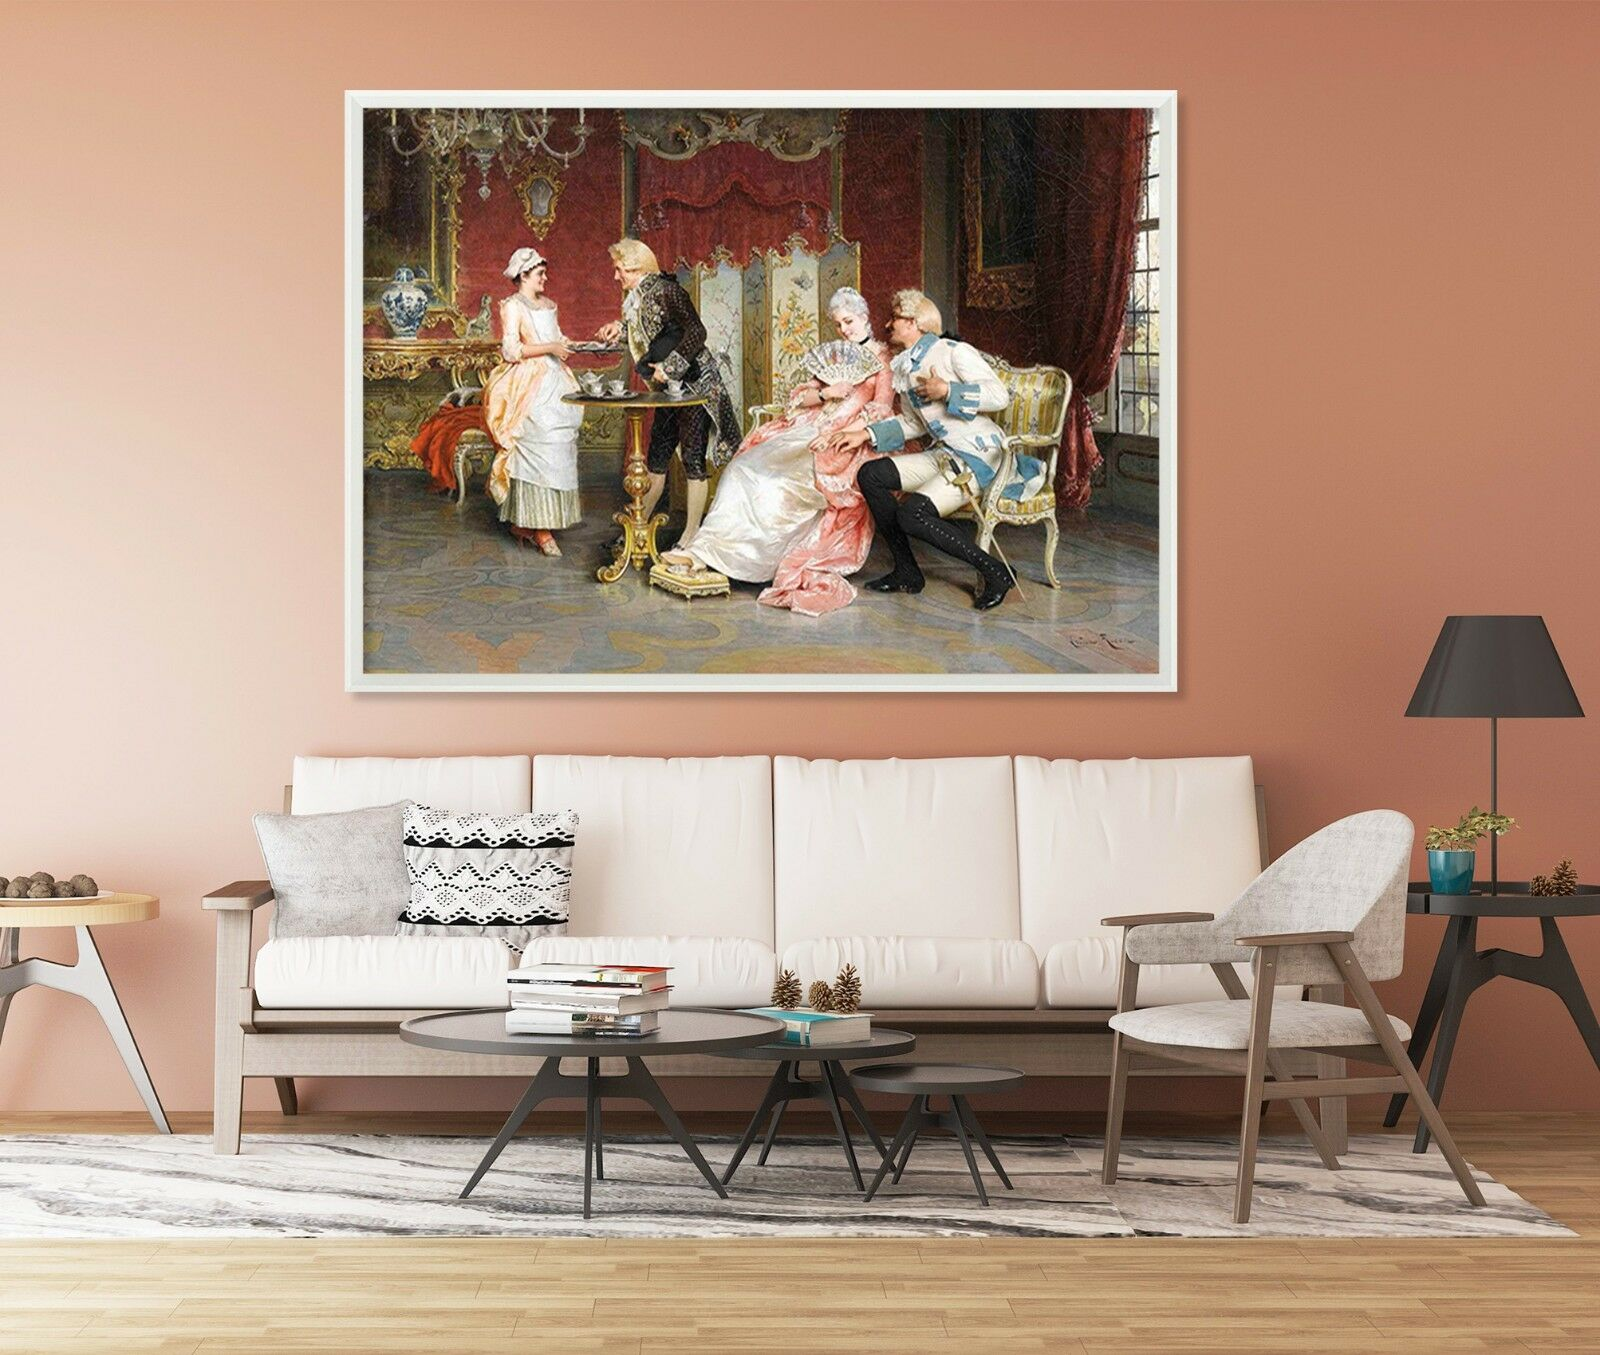 3D Europe Royal Painting 9 Framed Poster Home Decor Print Painting Art WALLPAPER